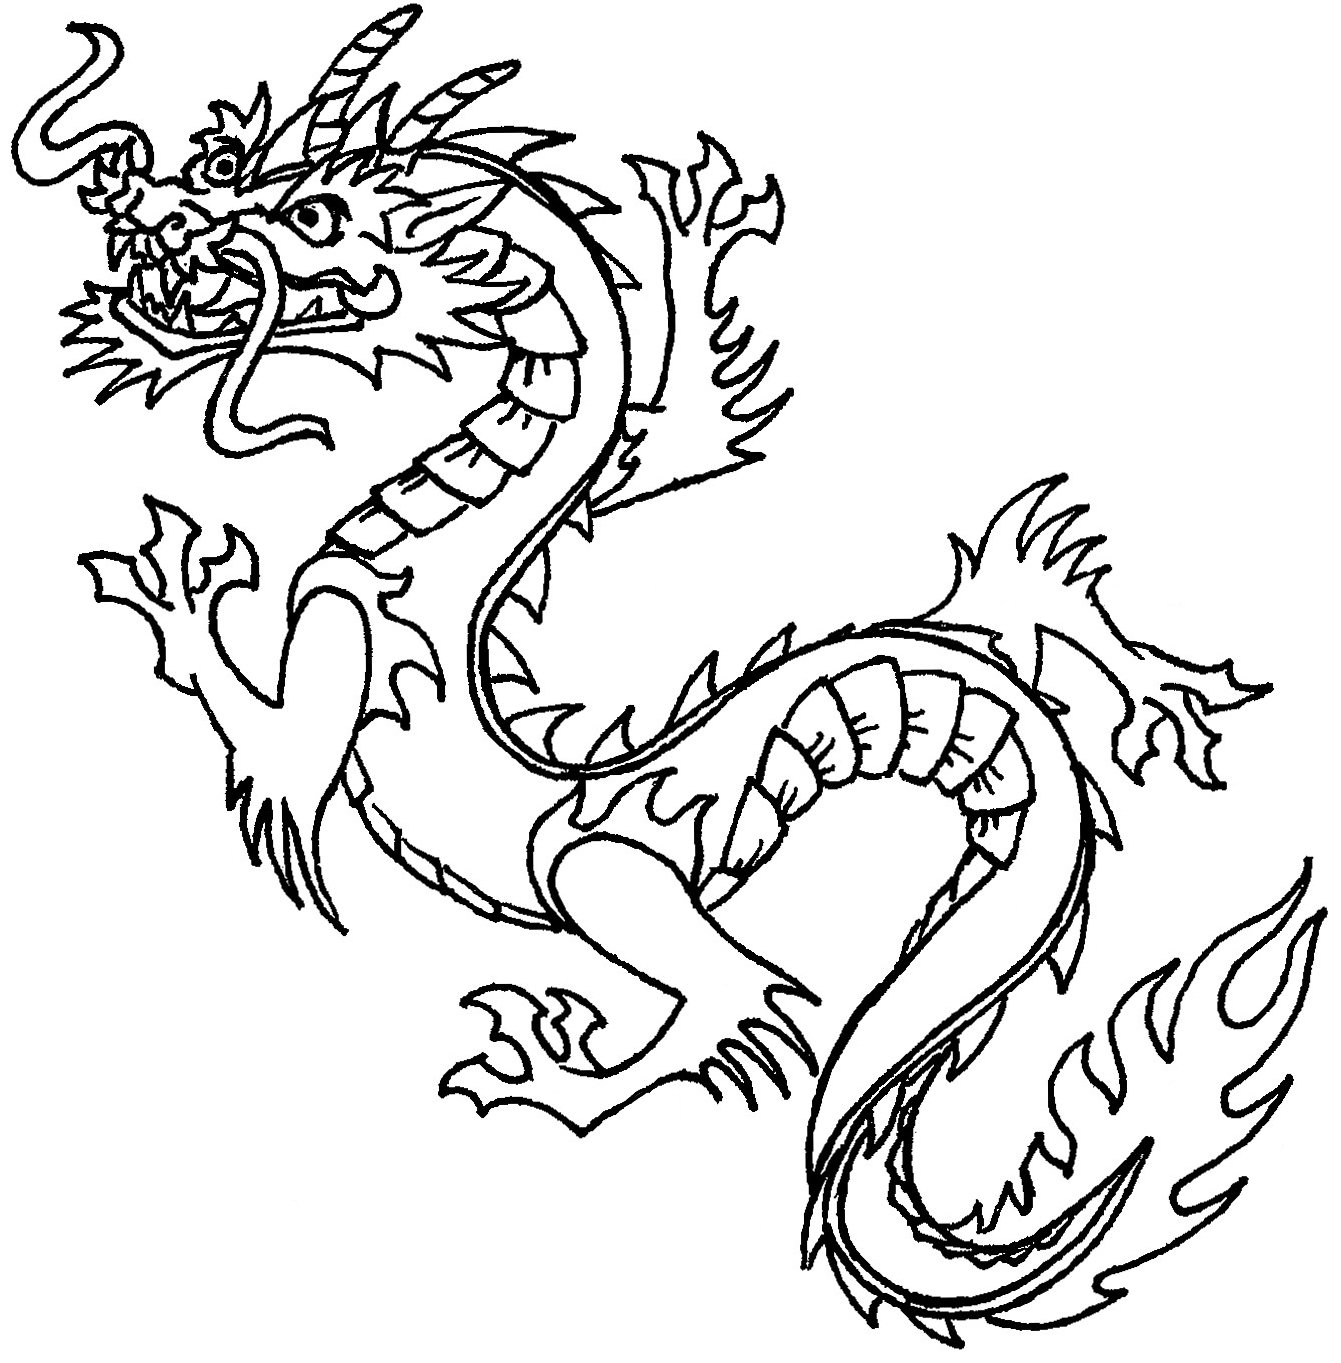 Chinese free download best. Dragon clipart classic